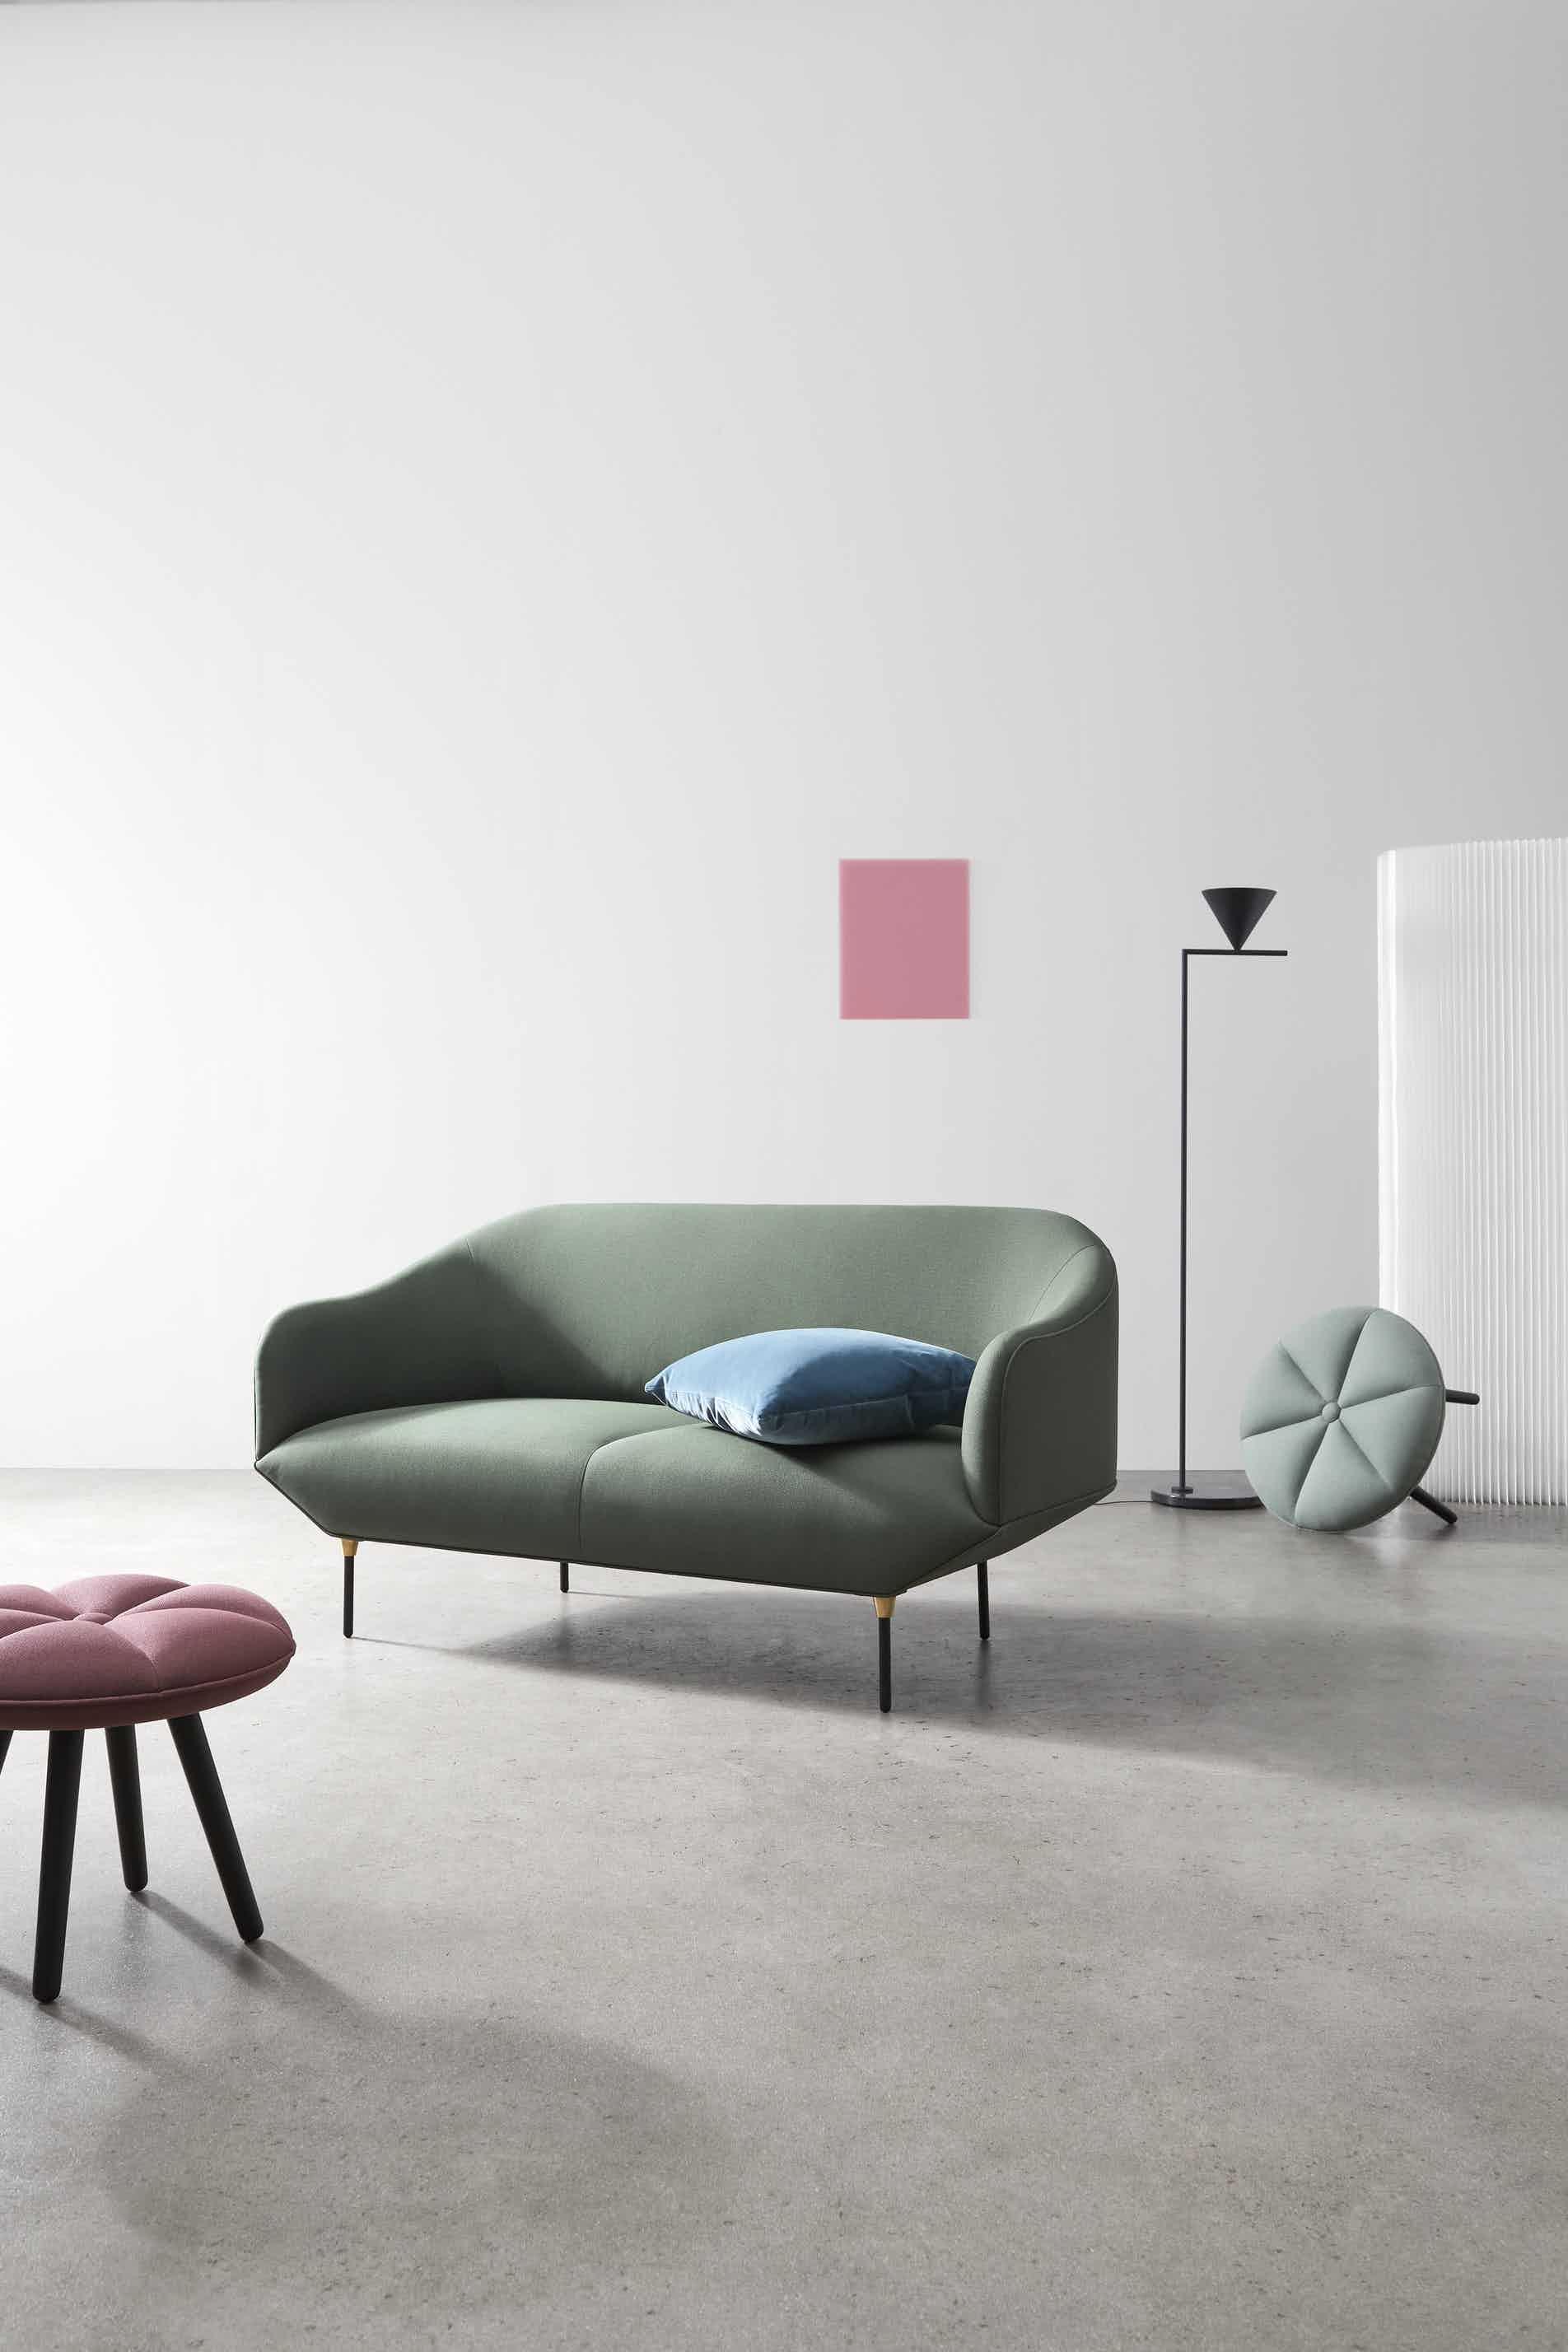 Bale sofa by won haute living chicago